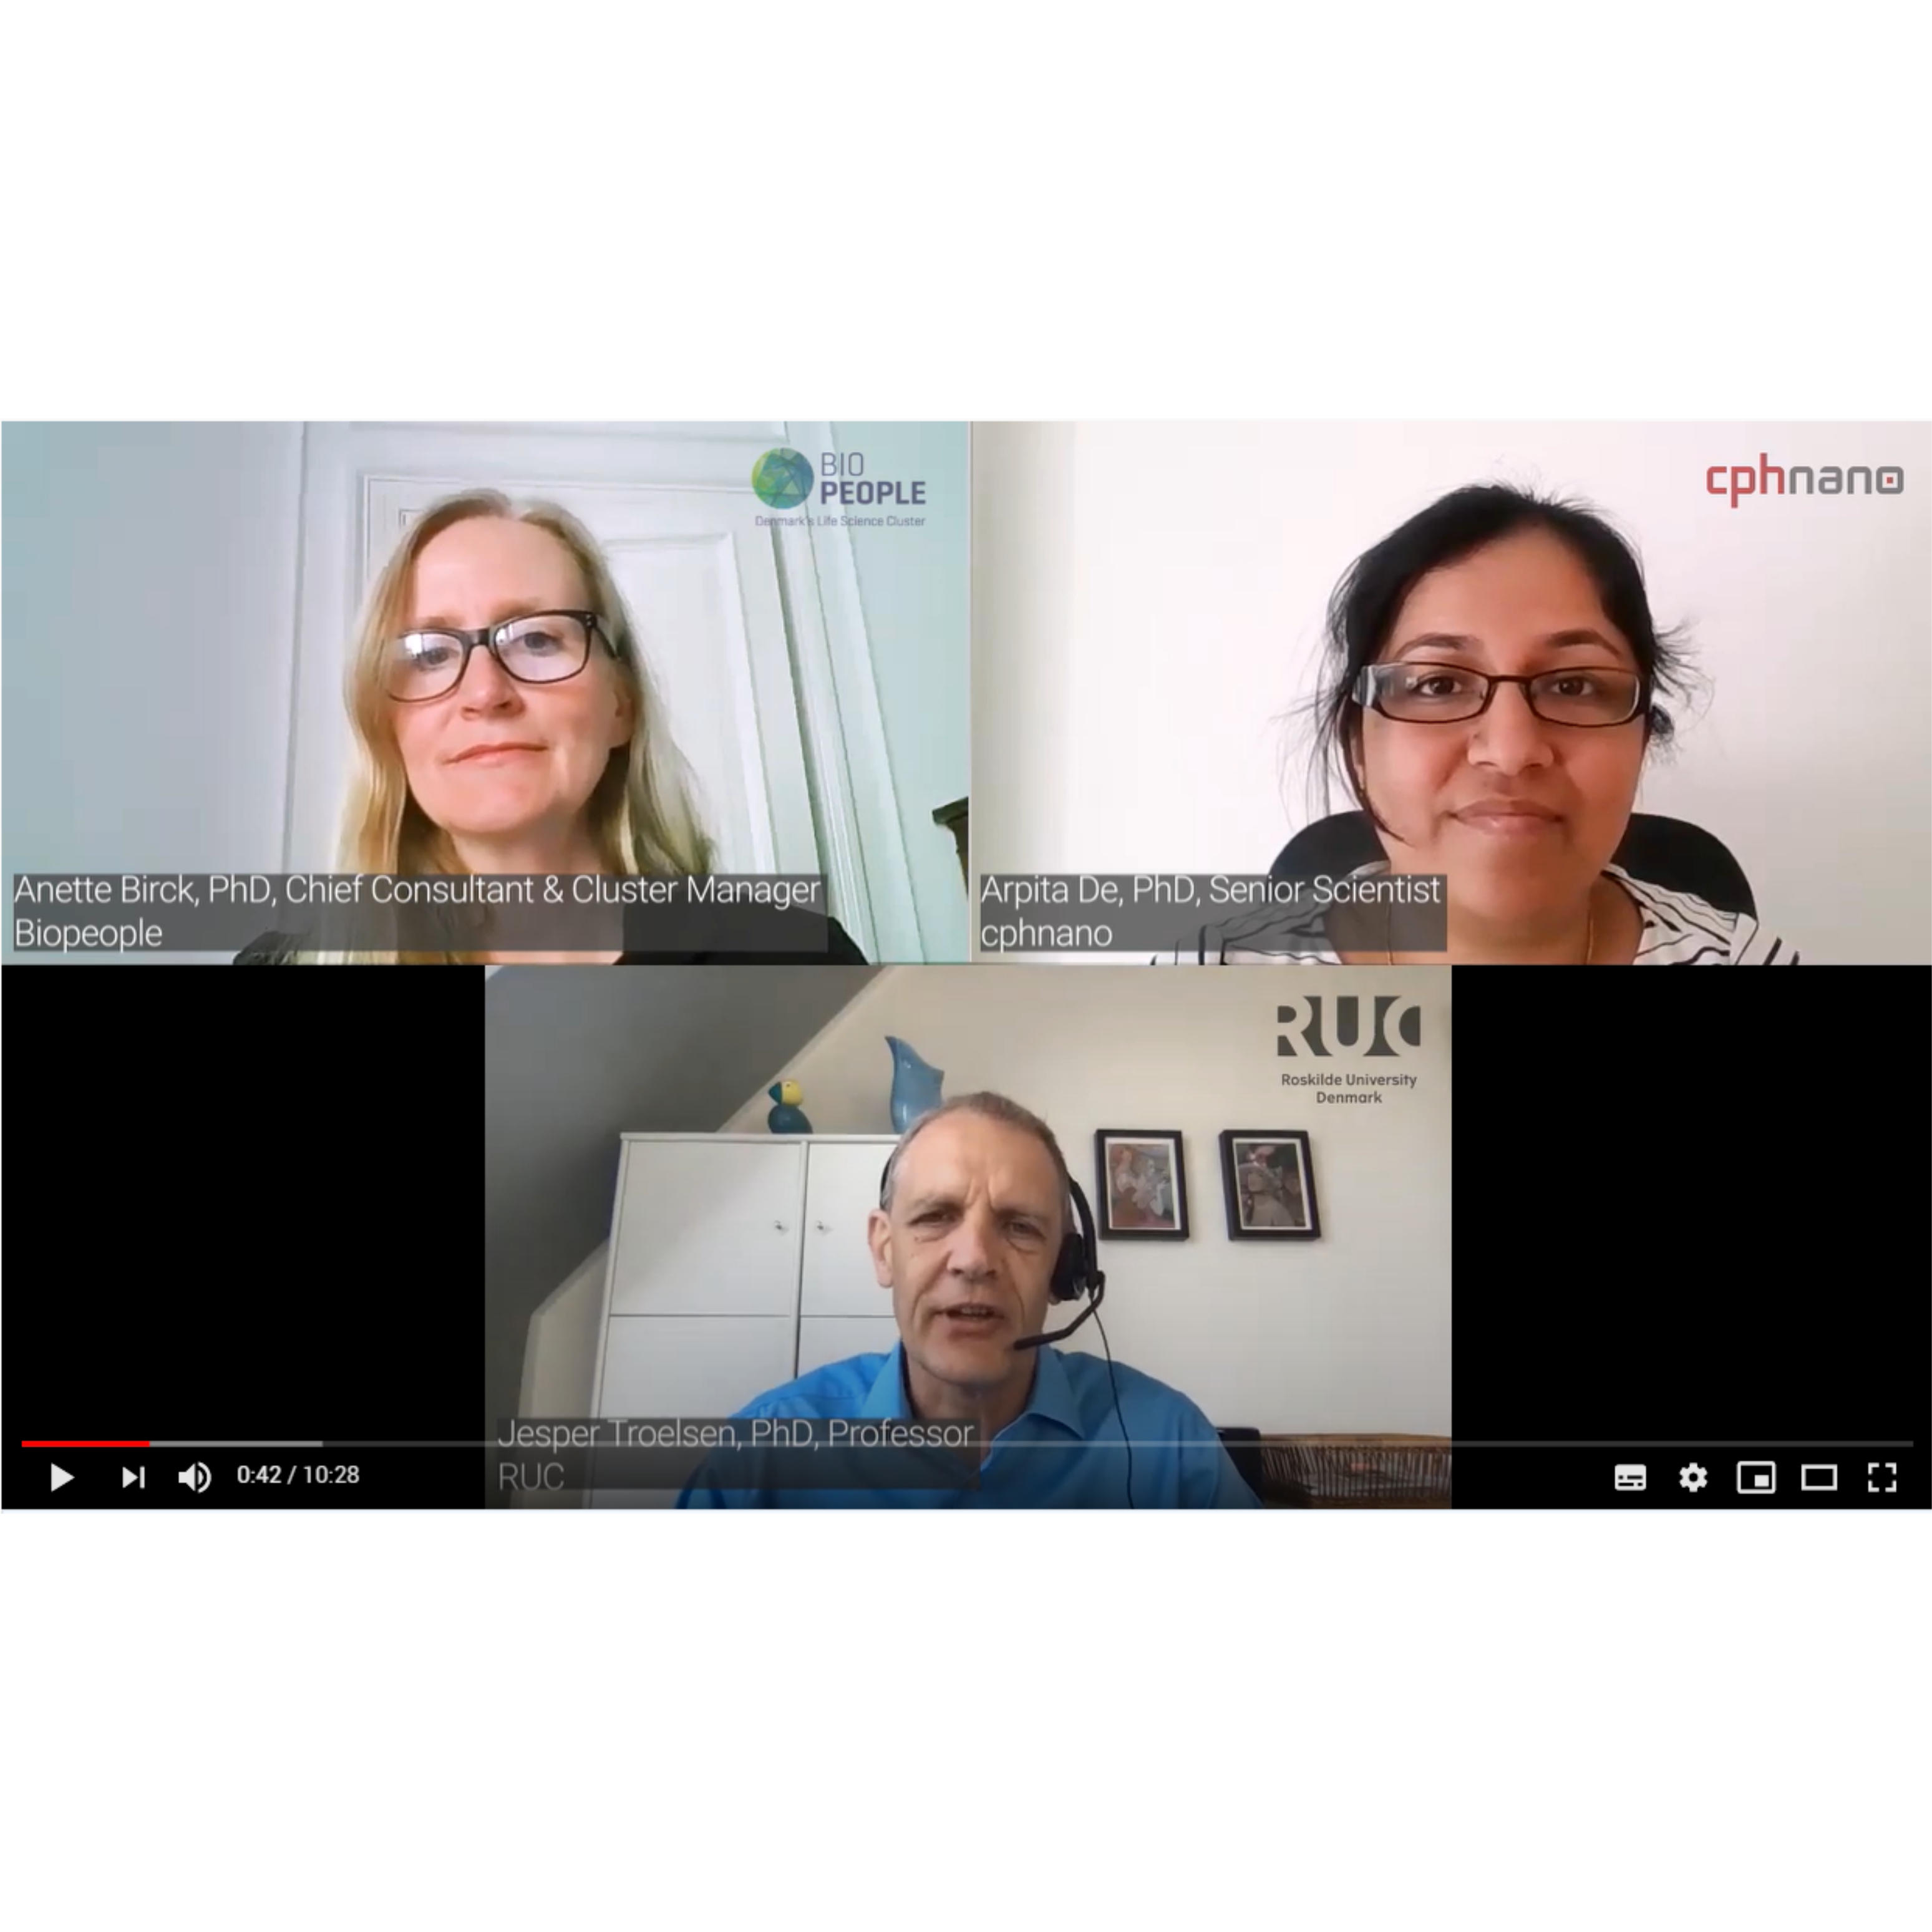 Experts talk about COVID-19 tests